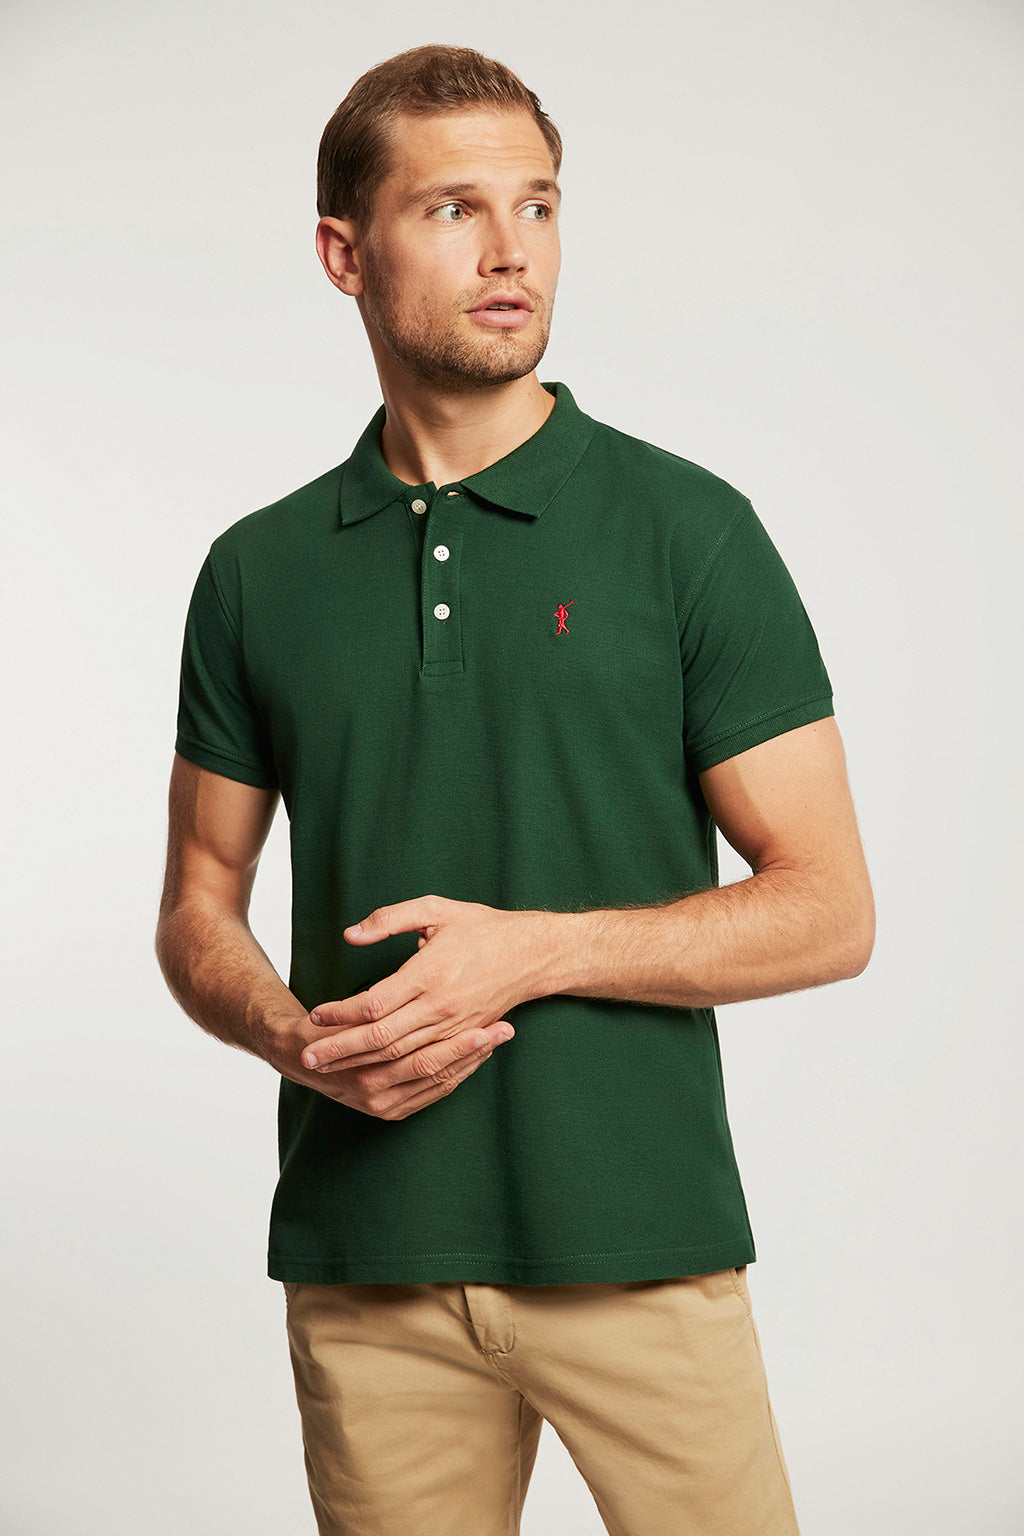 Bottle green pique polo shirt